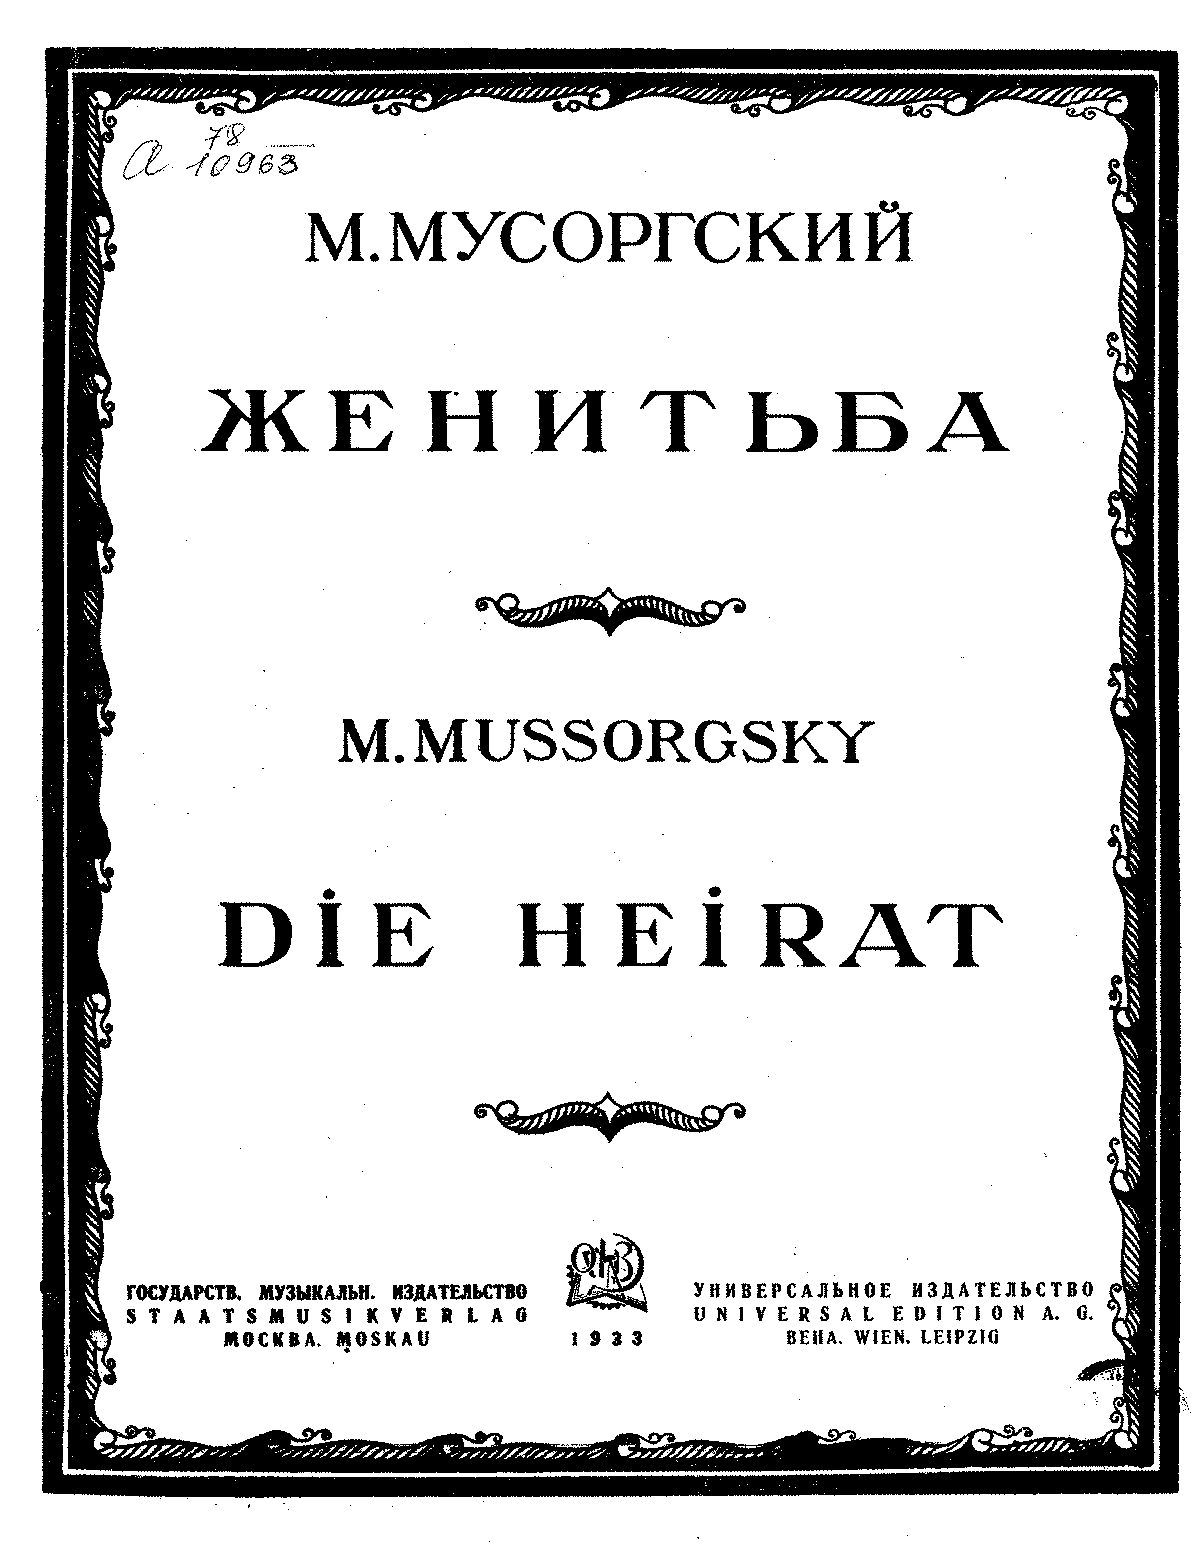 PMLP48967-Mussorgsky-MarriageVSmuz.pdf